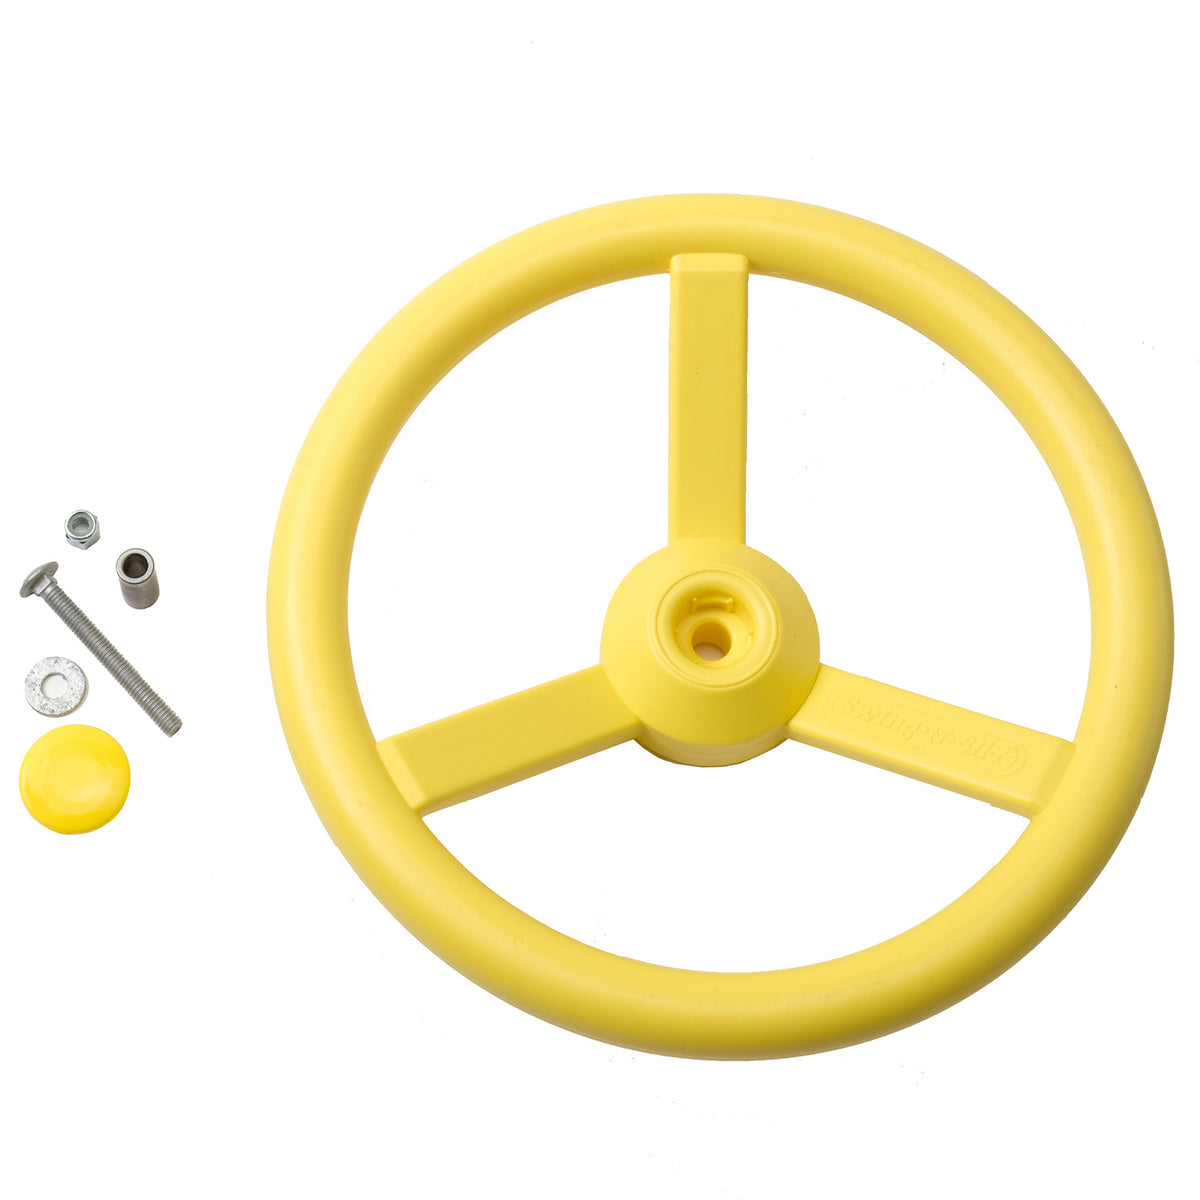 Gorilla-Playsets-Steering-Wheel-Yellow-W-Bolts-White-Back